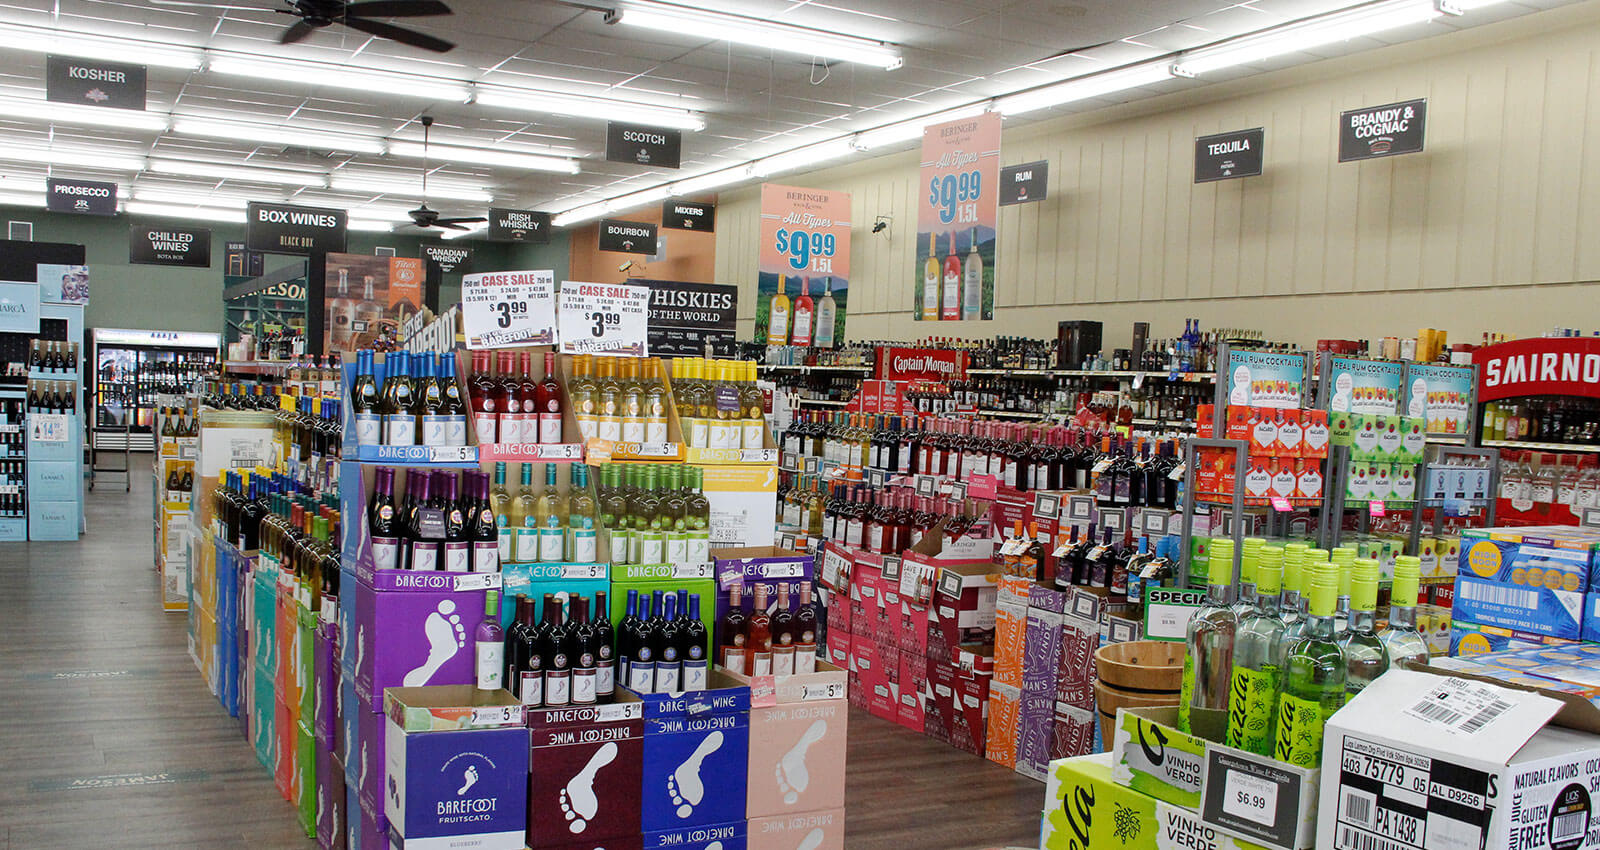 Barefoot Wines and other liquor offerings